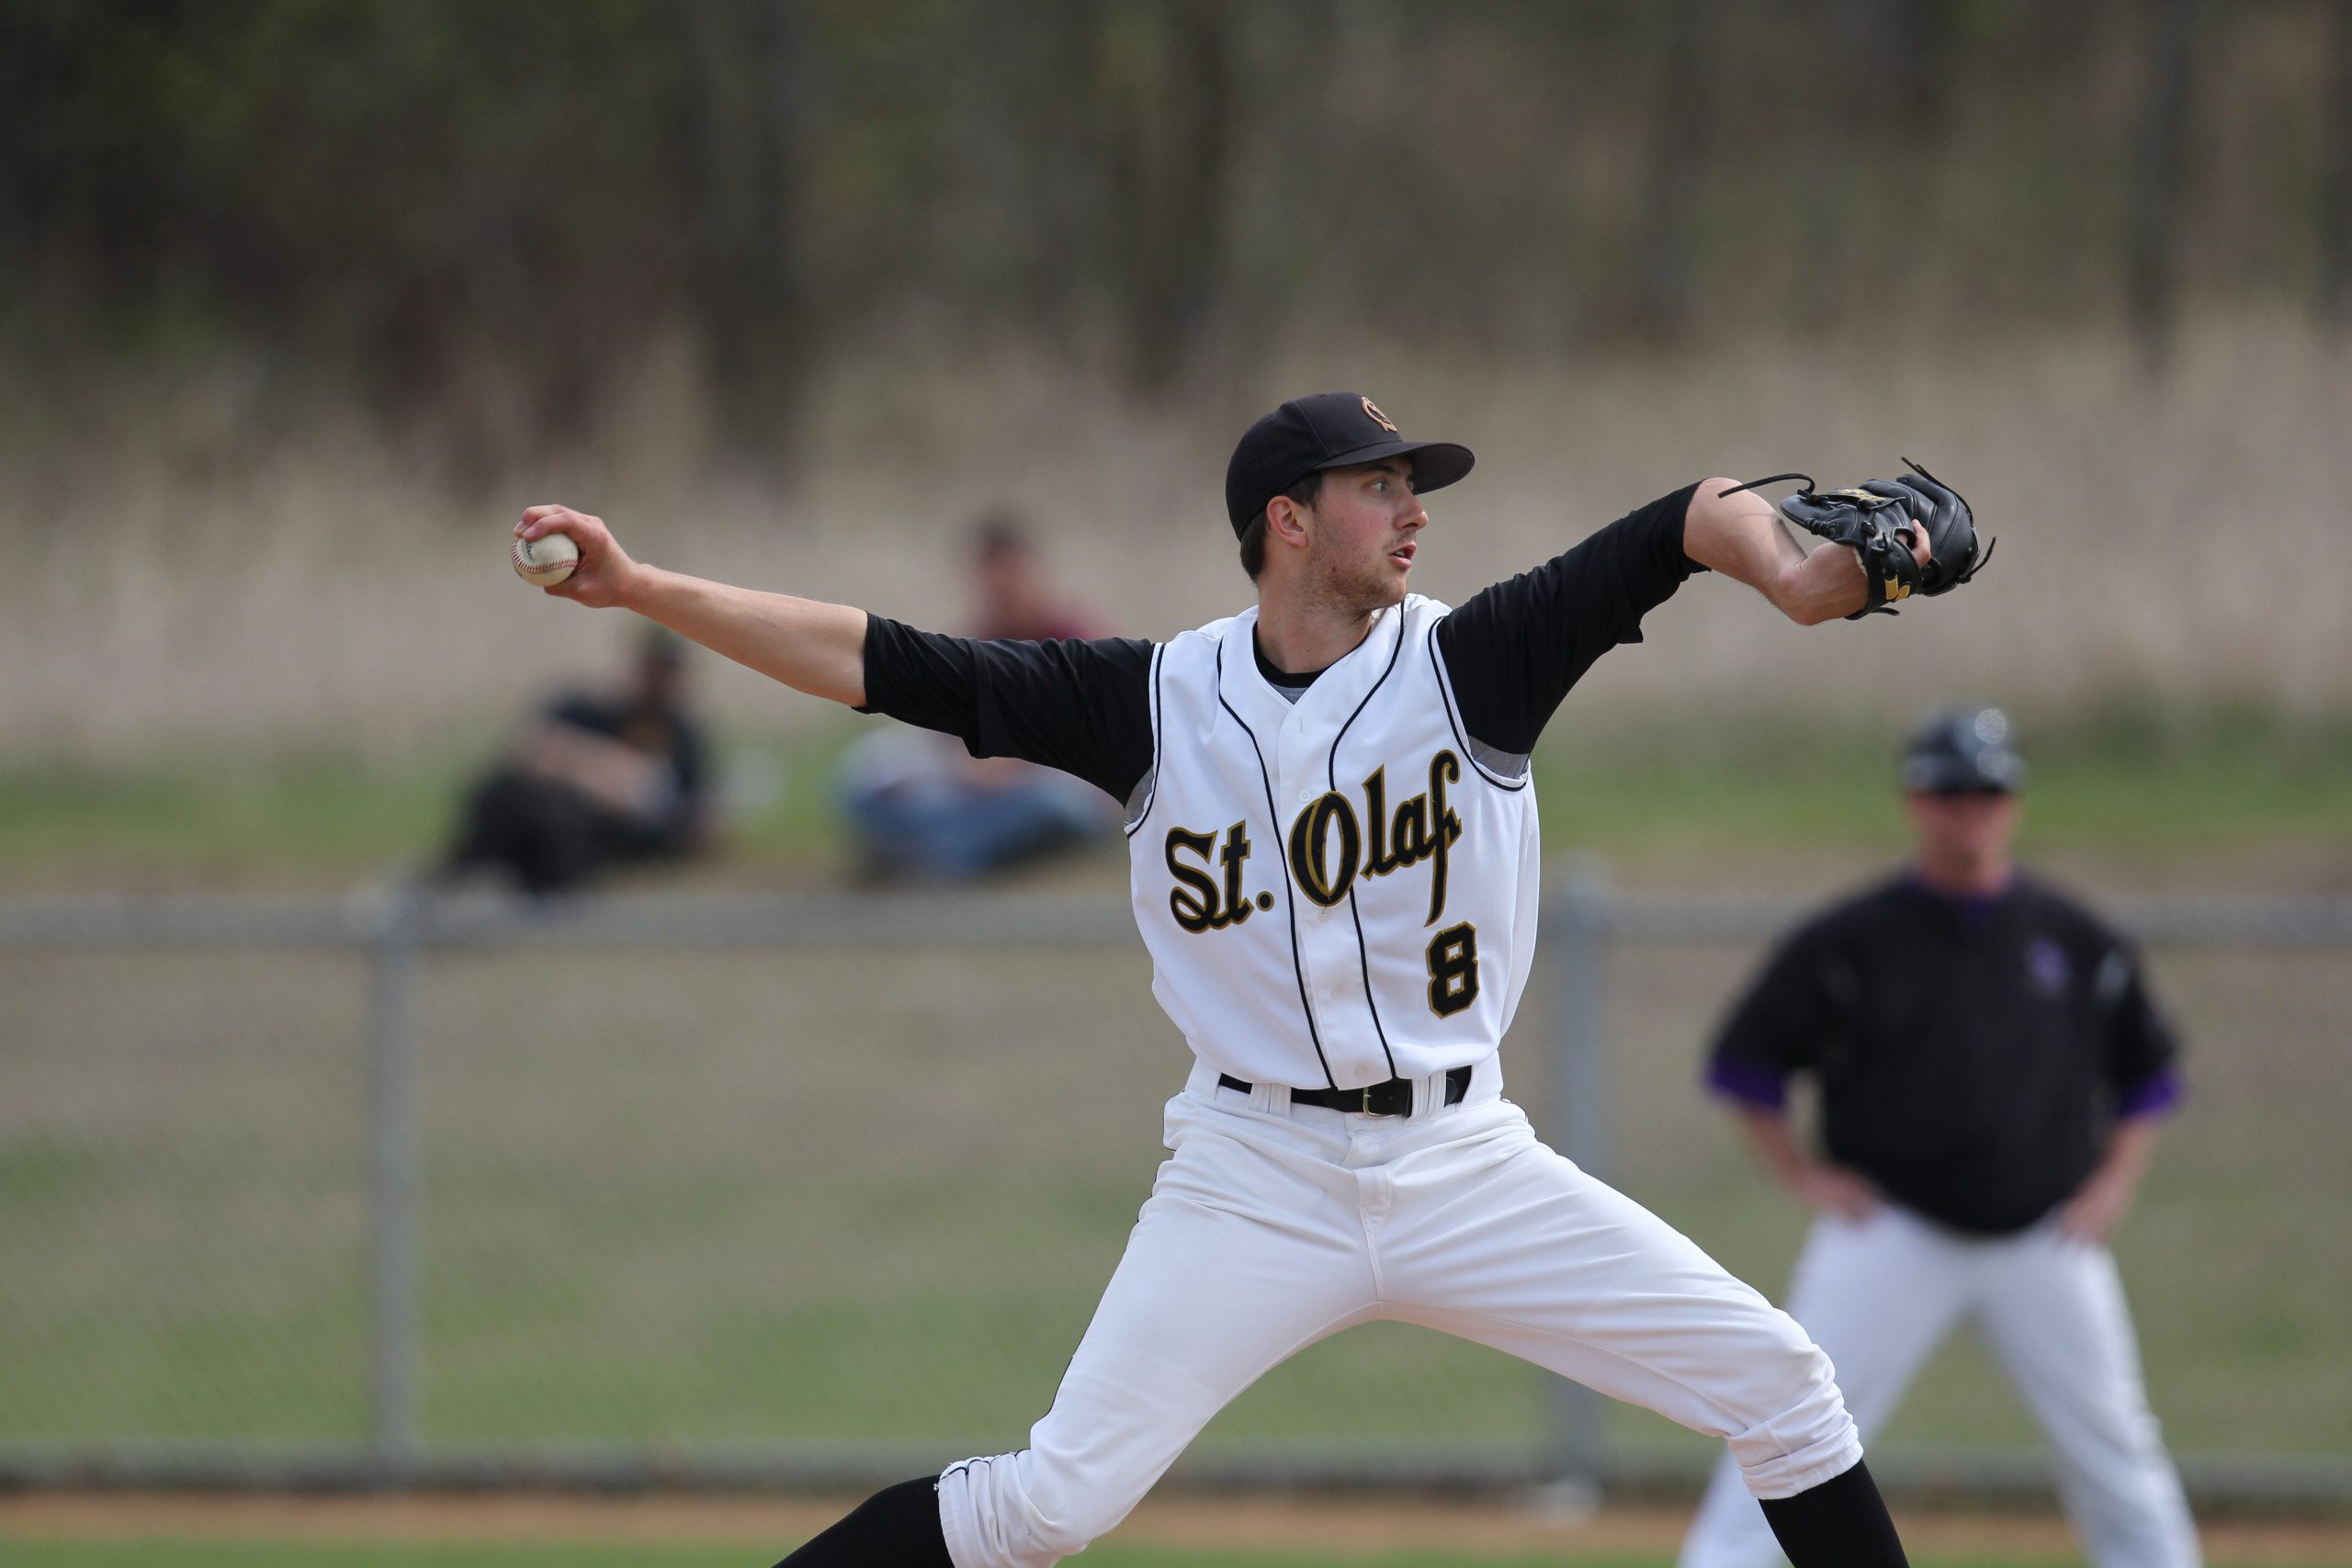 Anders Dzurak '13 pitches during a St. Olaf baseball game.